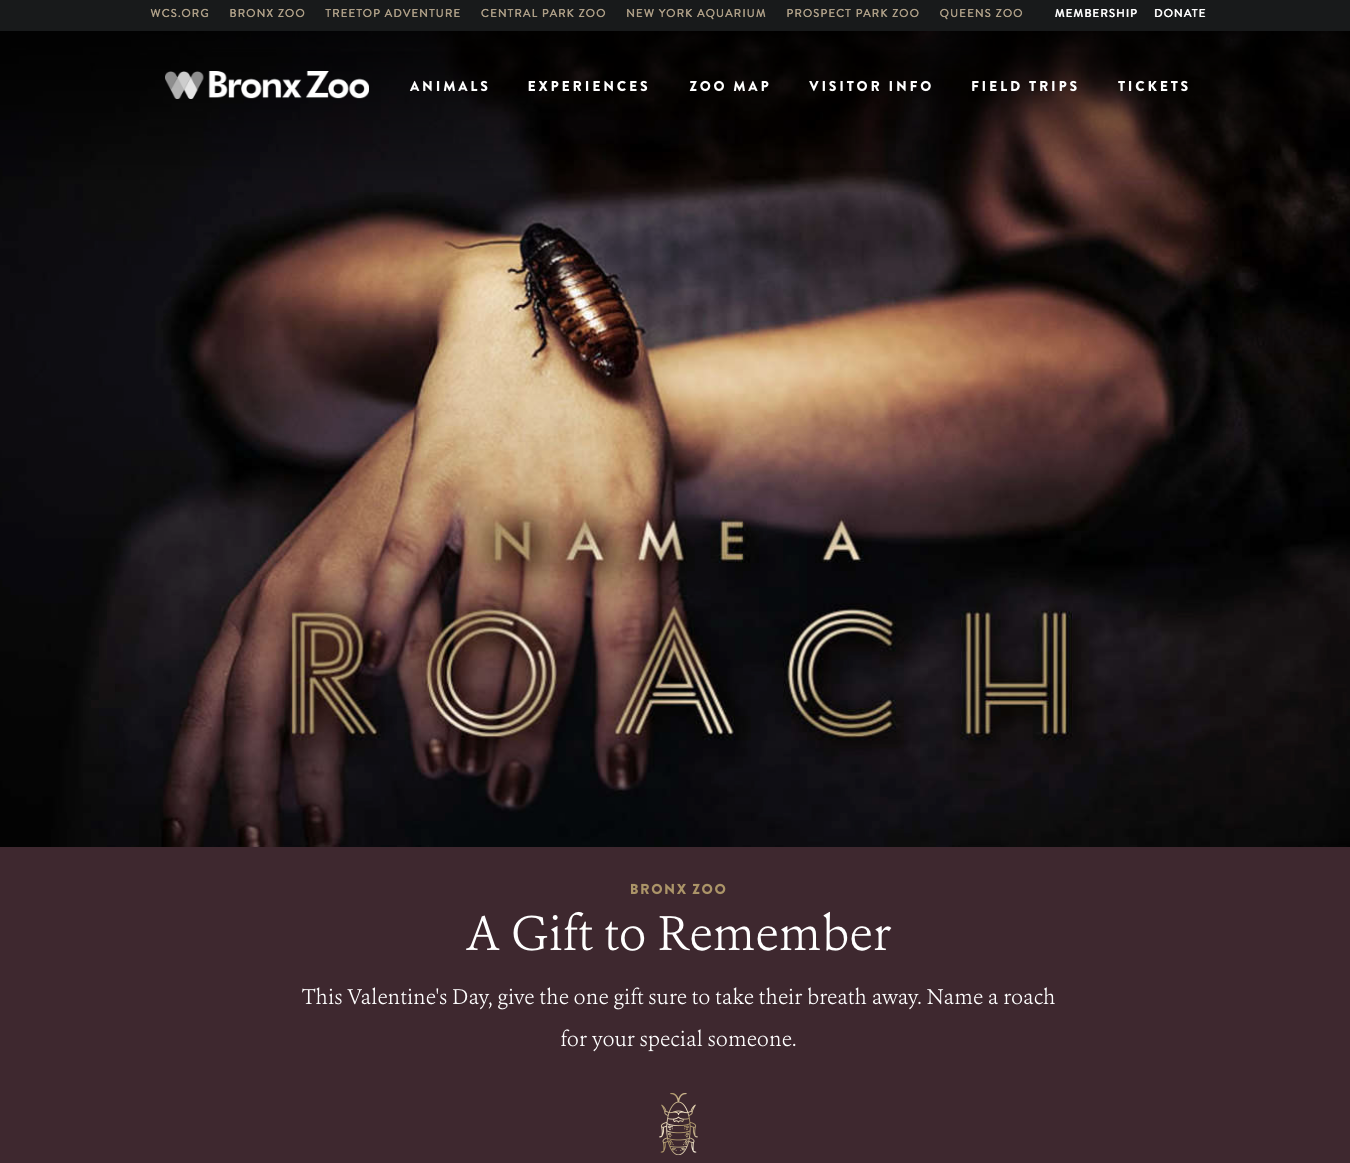 Fun fact: a colony of Madagascar hissing cockroaches can eat a large carrot in a single day. Photo credit: This is a screenshot of the Bronx Zoo's Name A Roach page on their website.